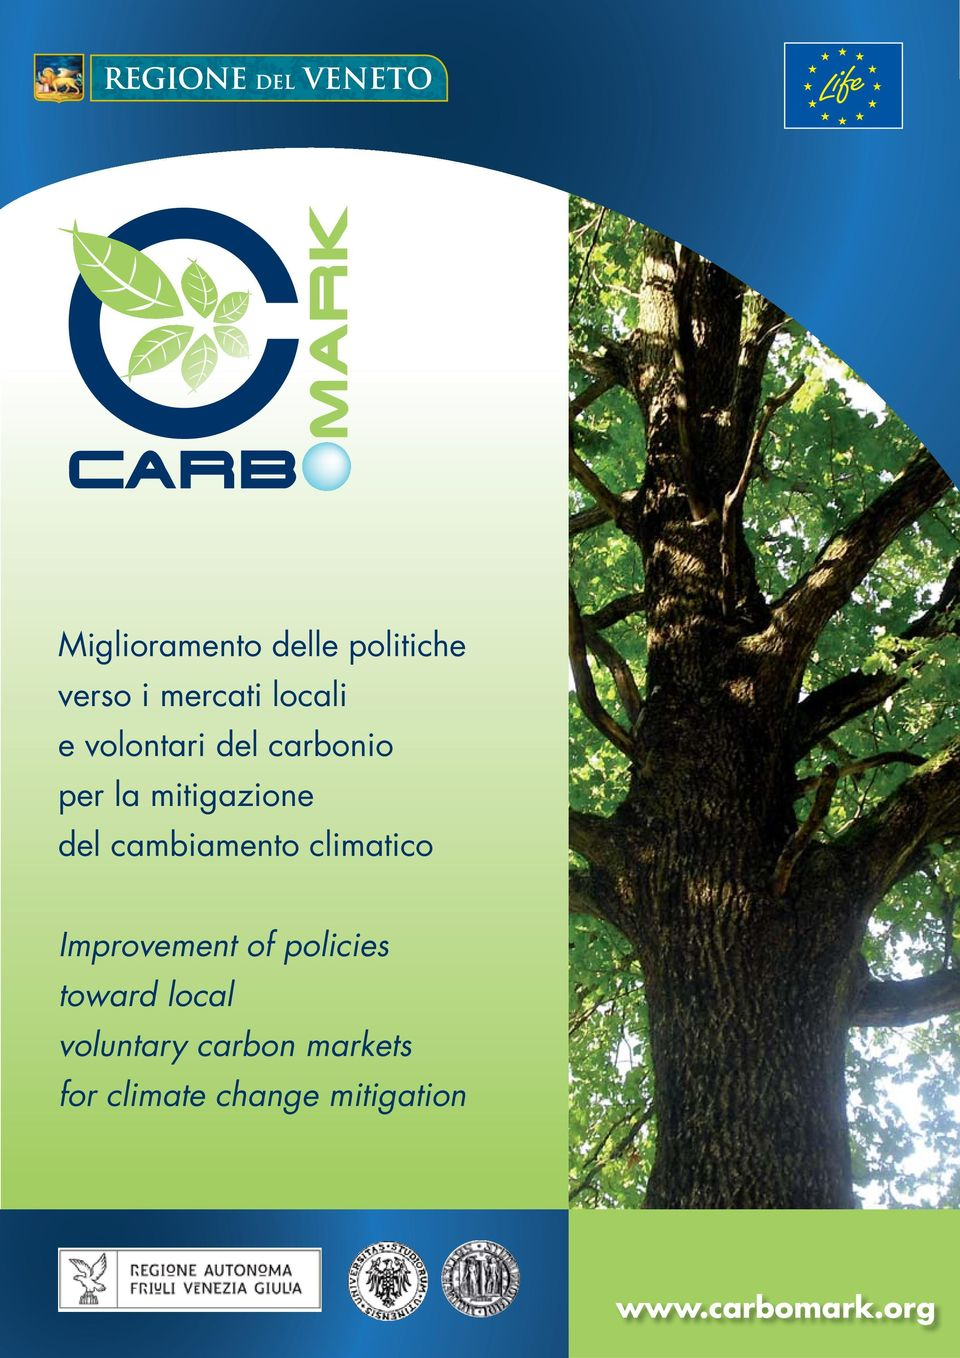 climatico Improvement of policies toward local voluntary